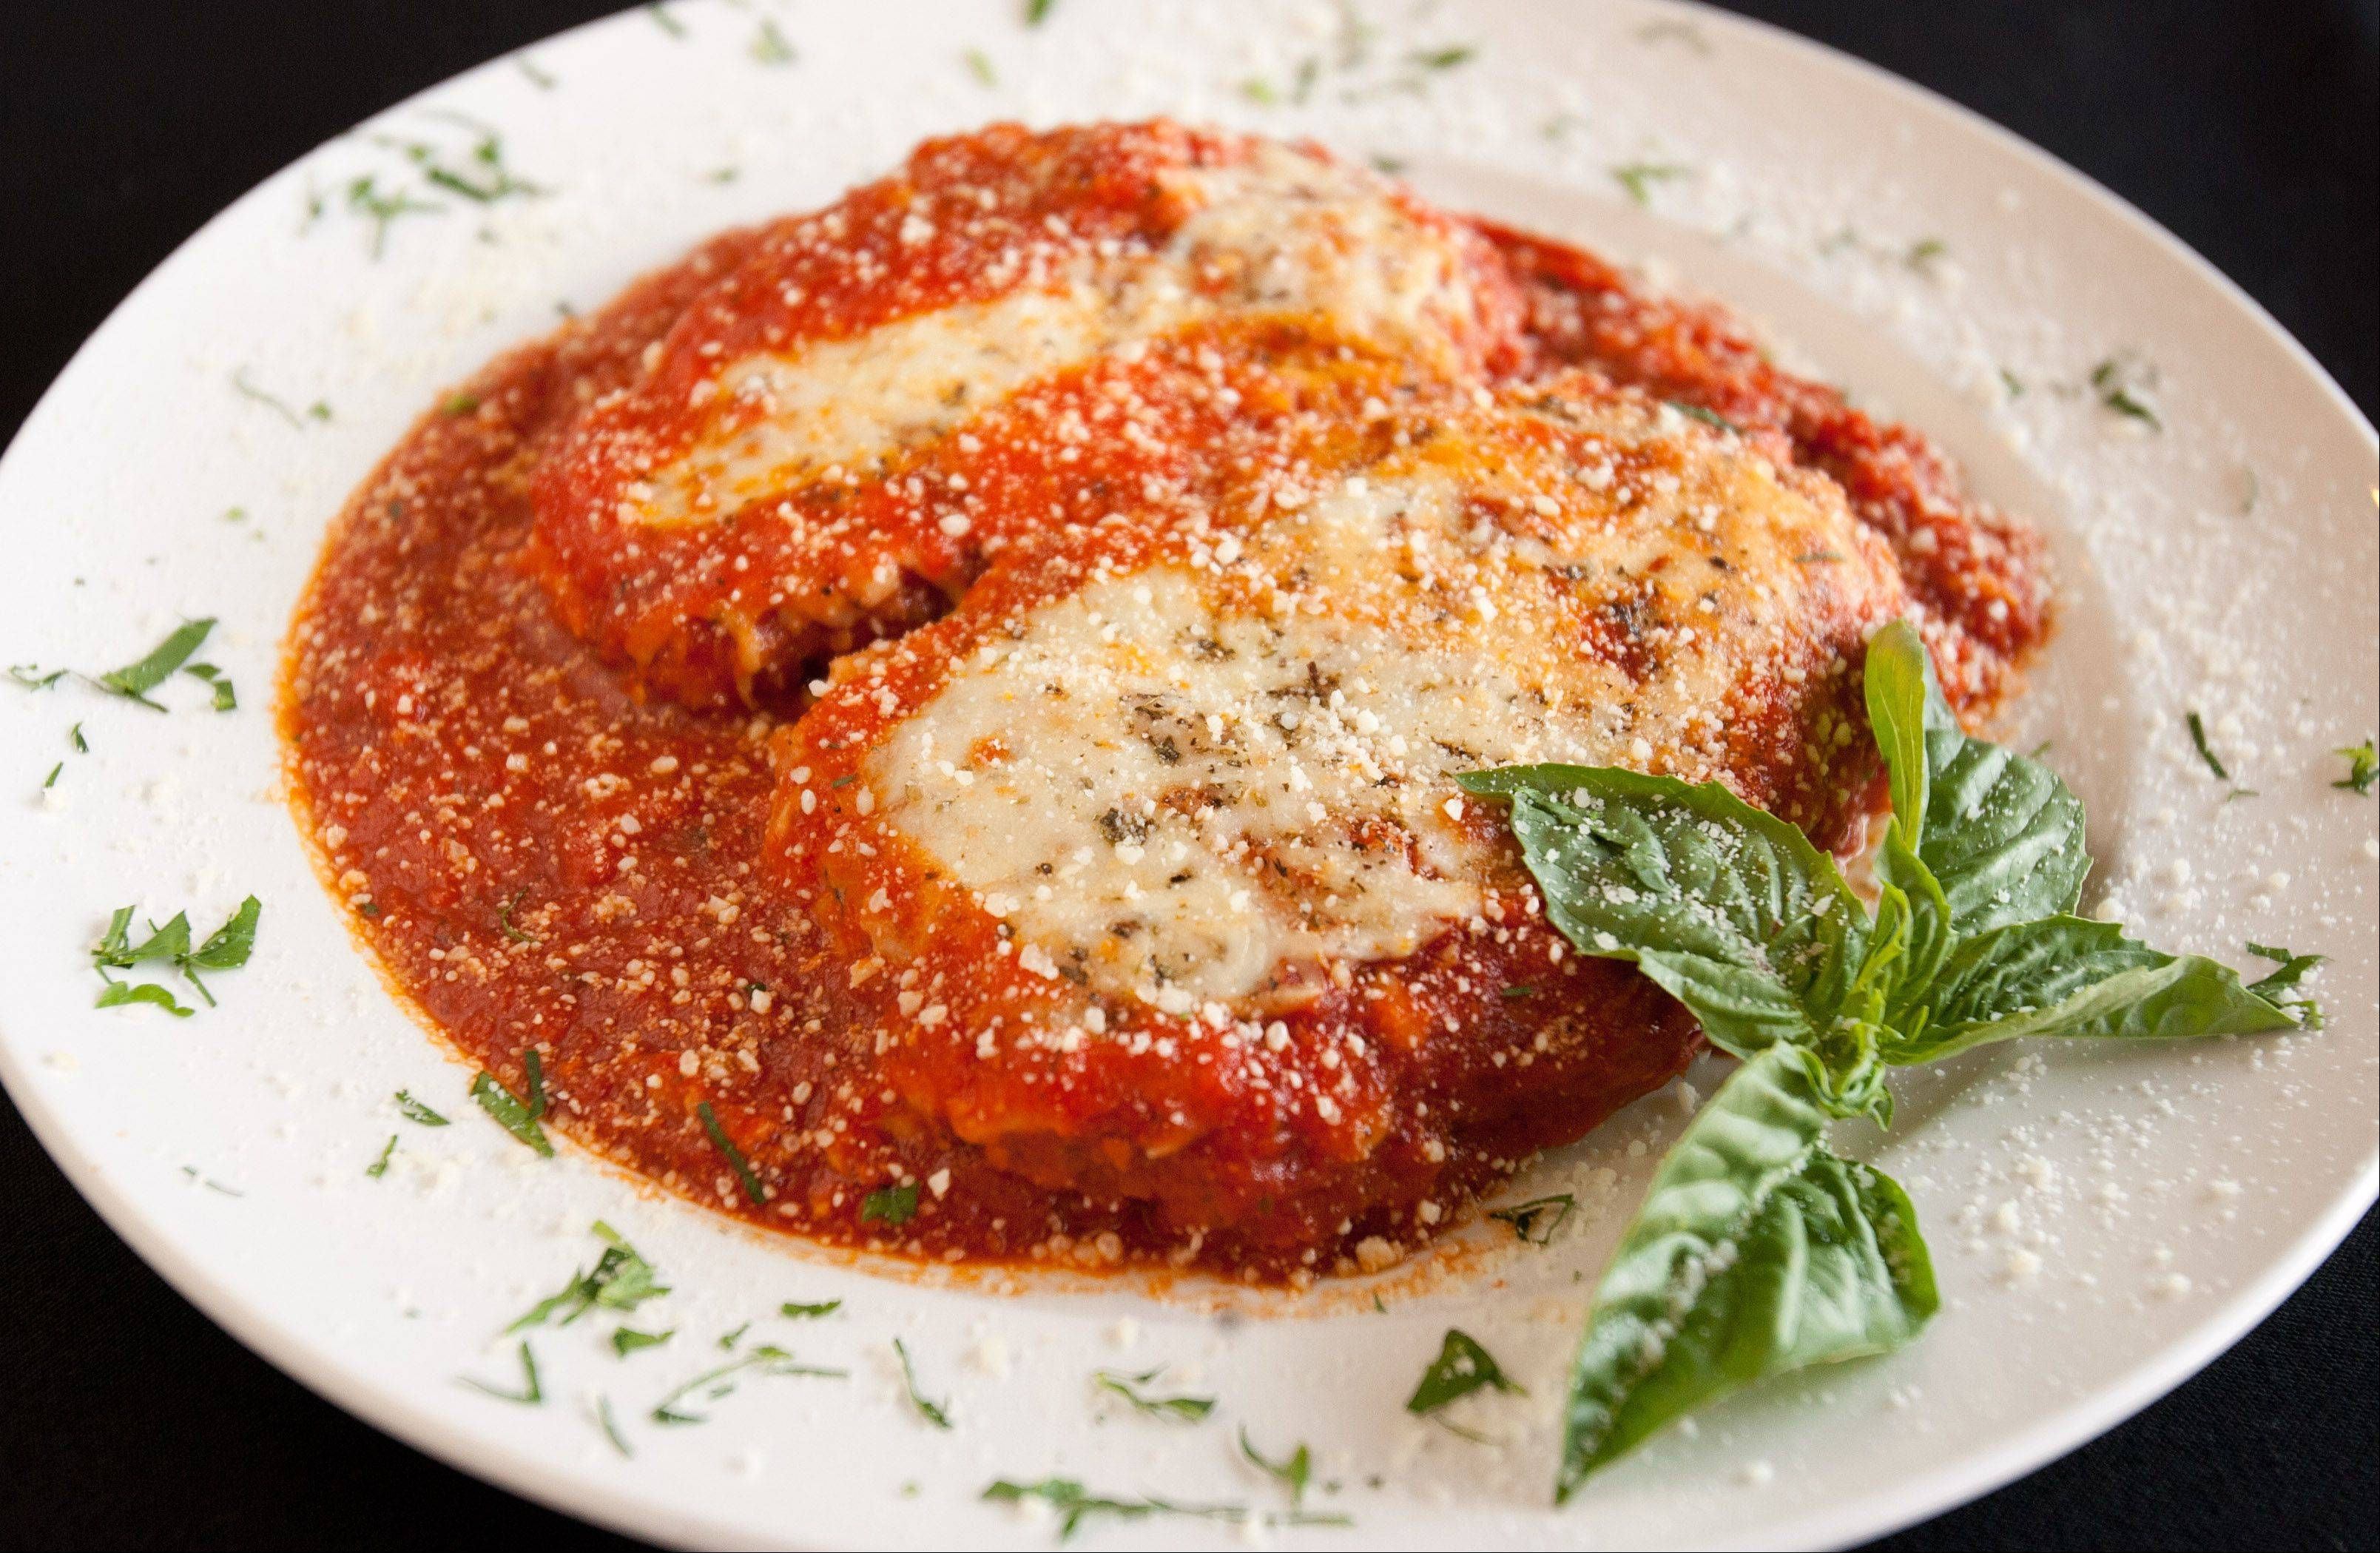 Chicken Parmesan at Navarro's of Naperville.